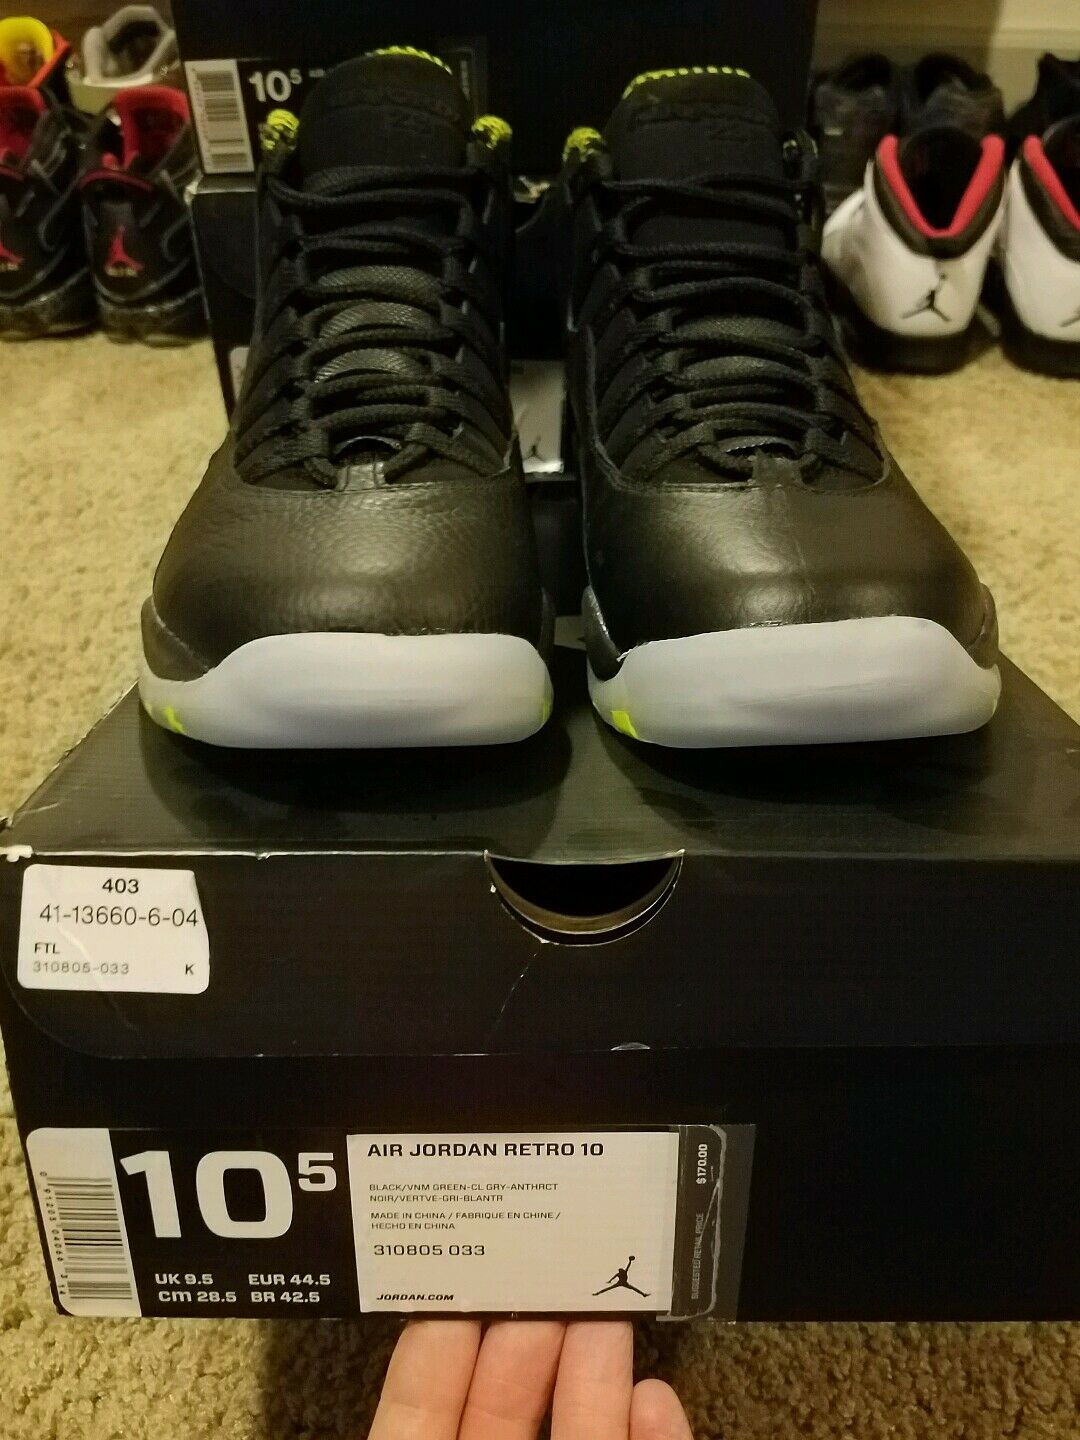 Air jordan retro 10 VNM